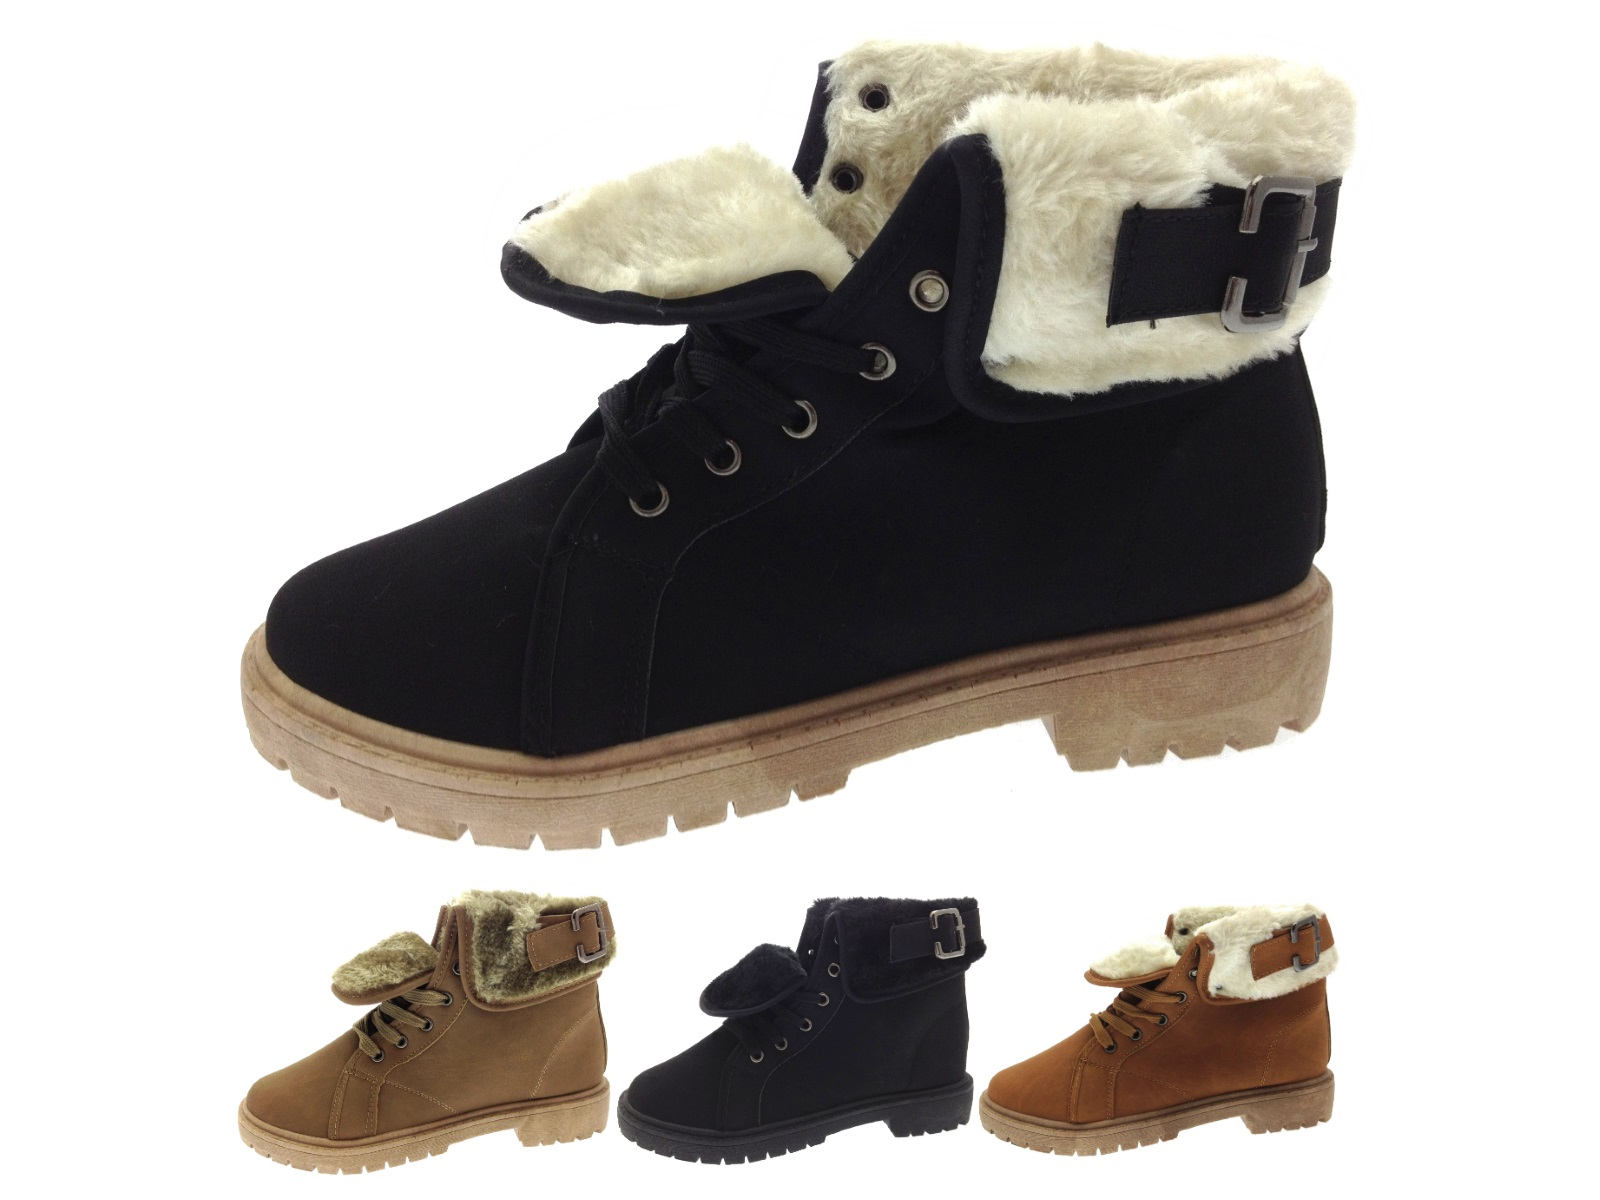 a121e48930f Details about Womens Faux Fur Lined Ankle Boots Winter Worker Combat  Military Chelsea Shoes